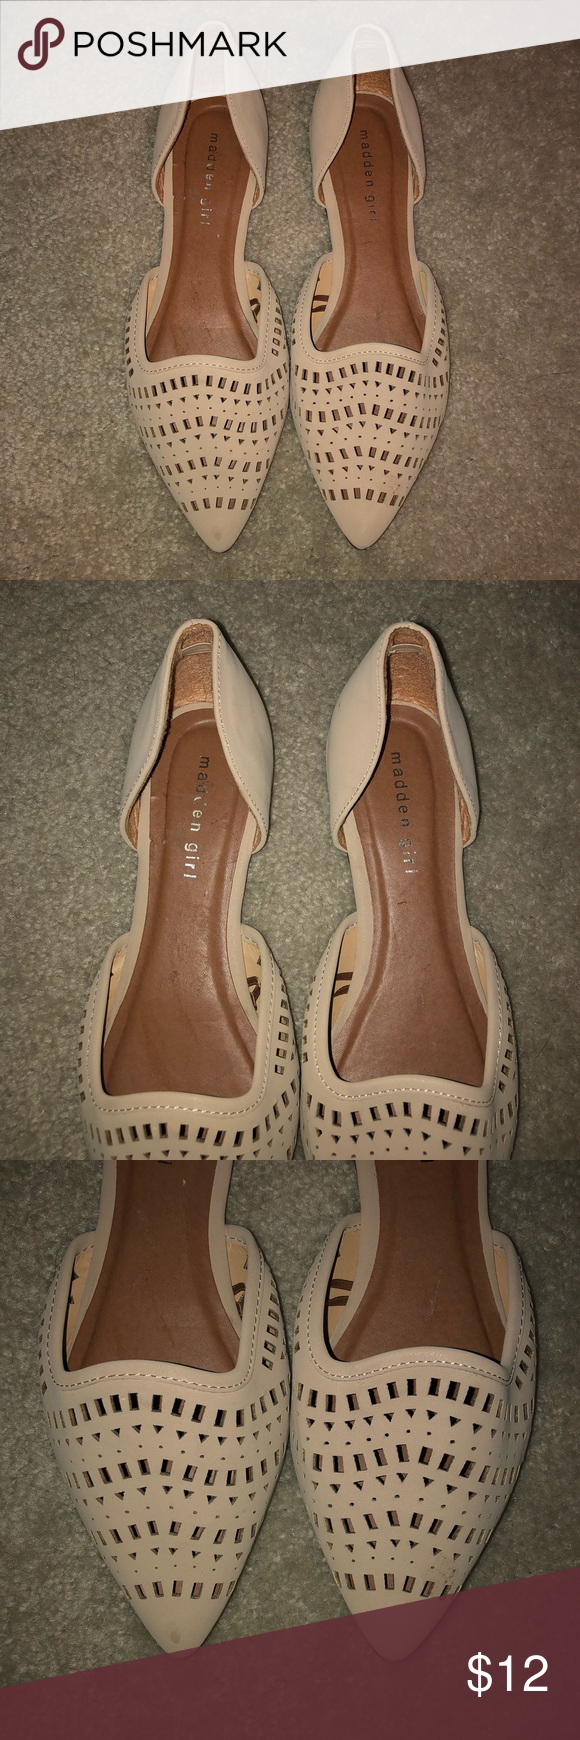 9e5d7dde04c Madden Girl Flats Never worn! Size 8.5. Nude in color. Madden Girl Shoes  Flats   Loafers